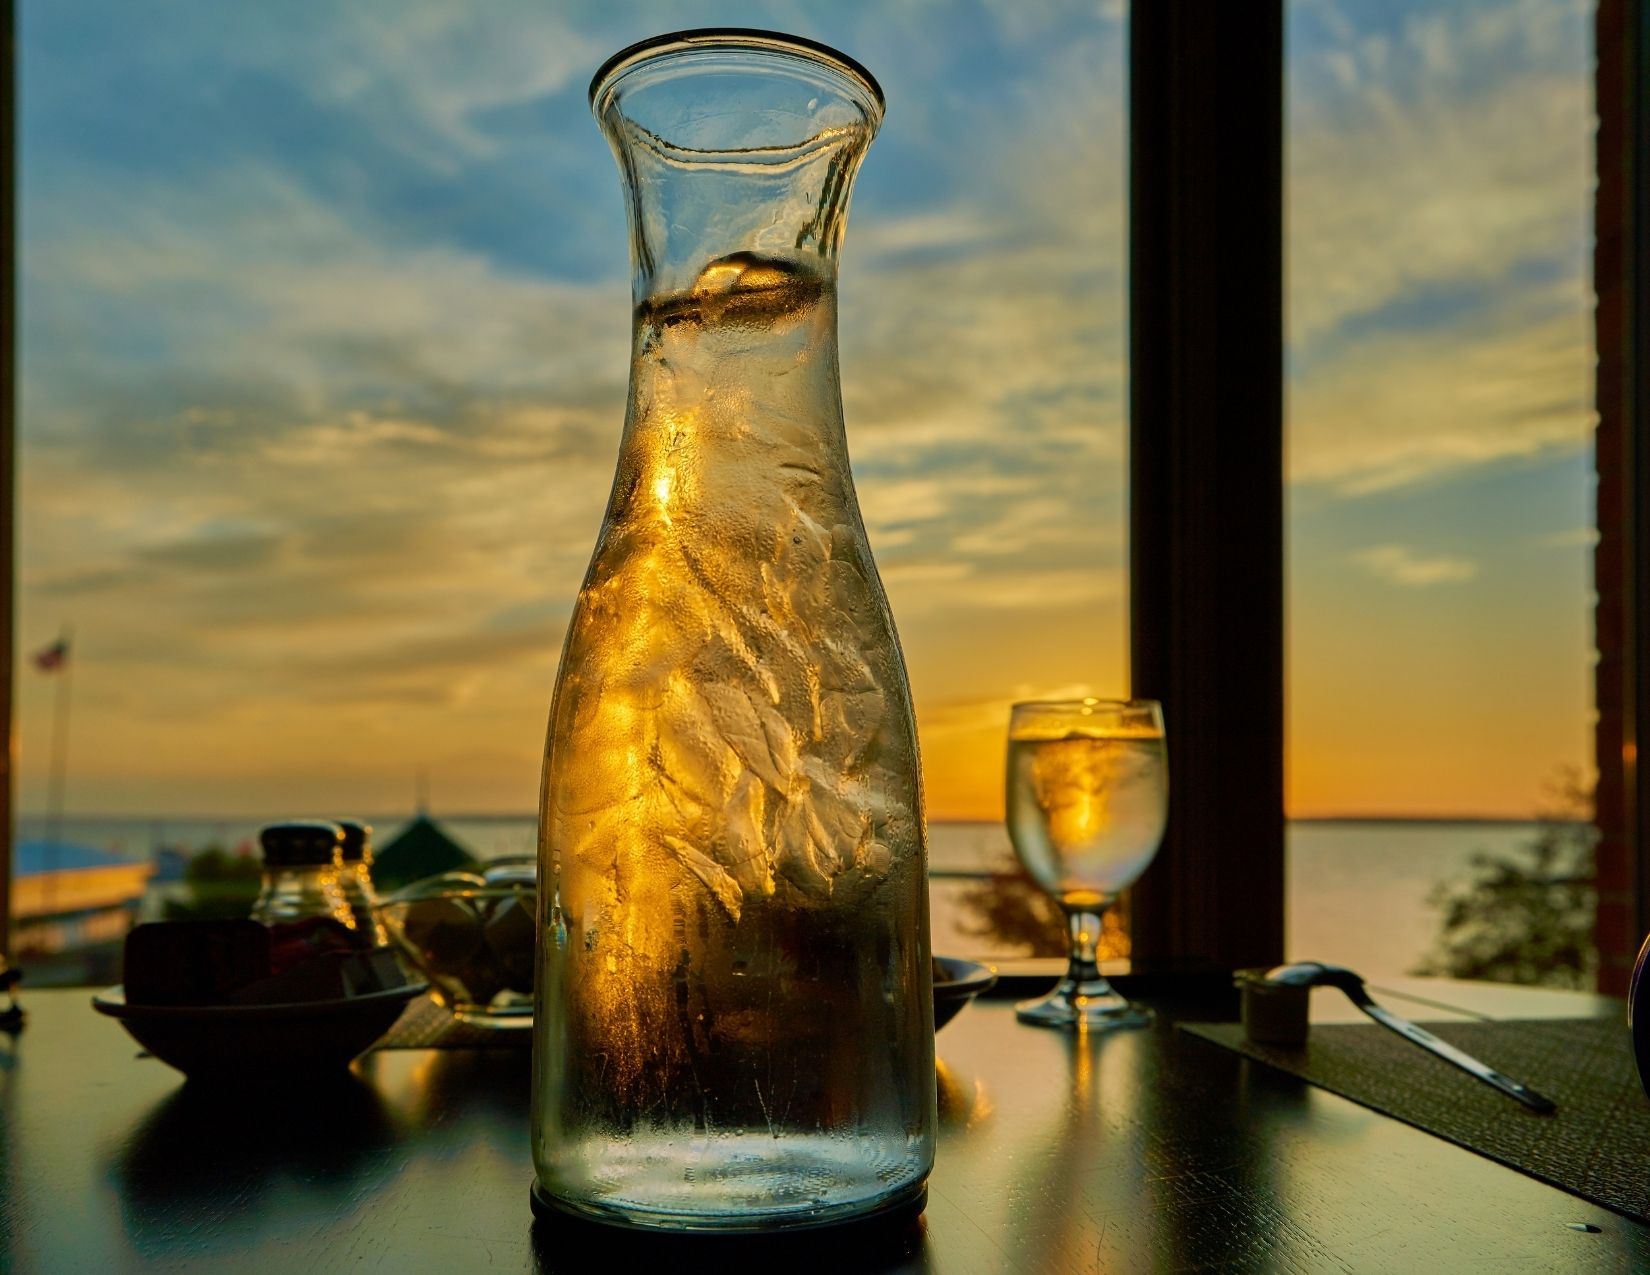 Image of a glass pitcher of water sitting on a table overlooking a sunset